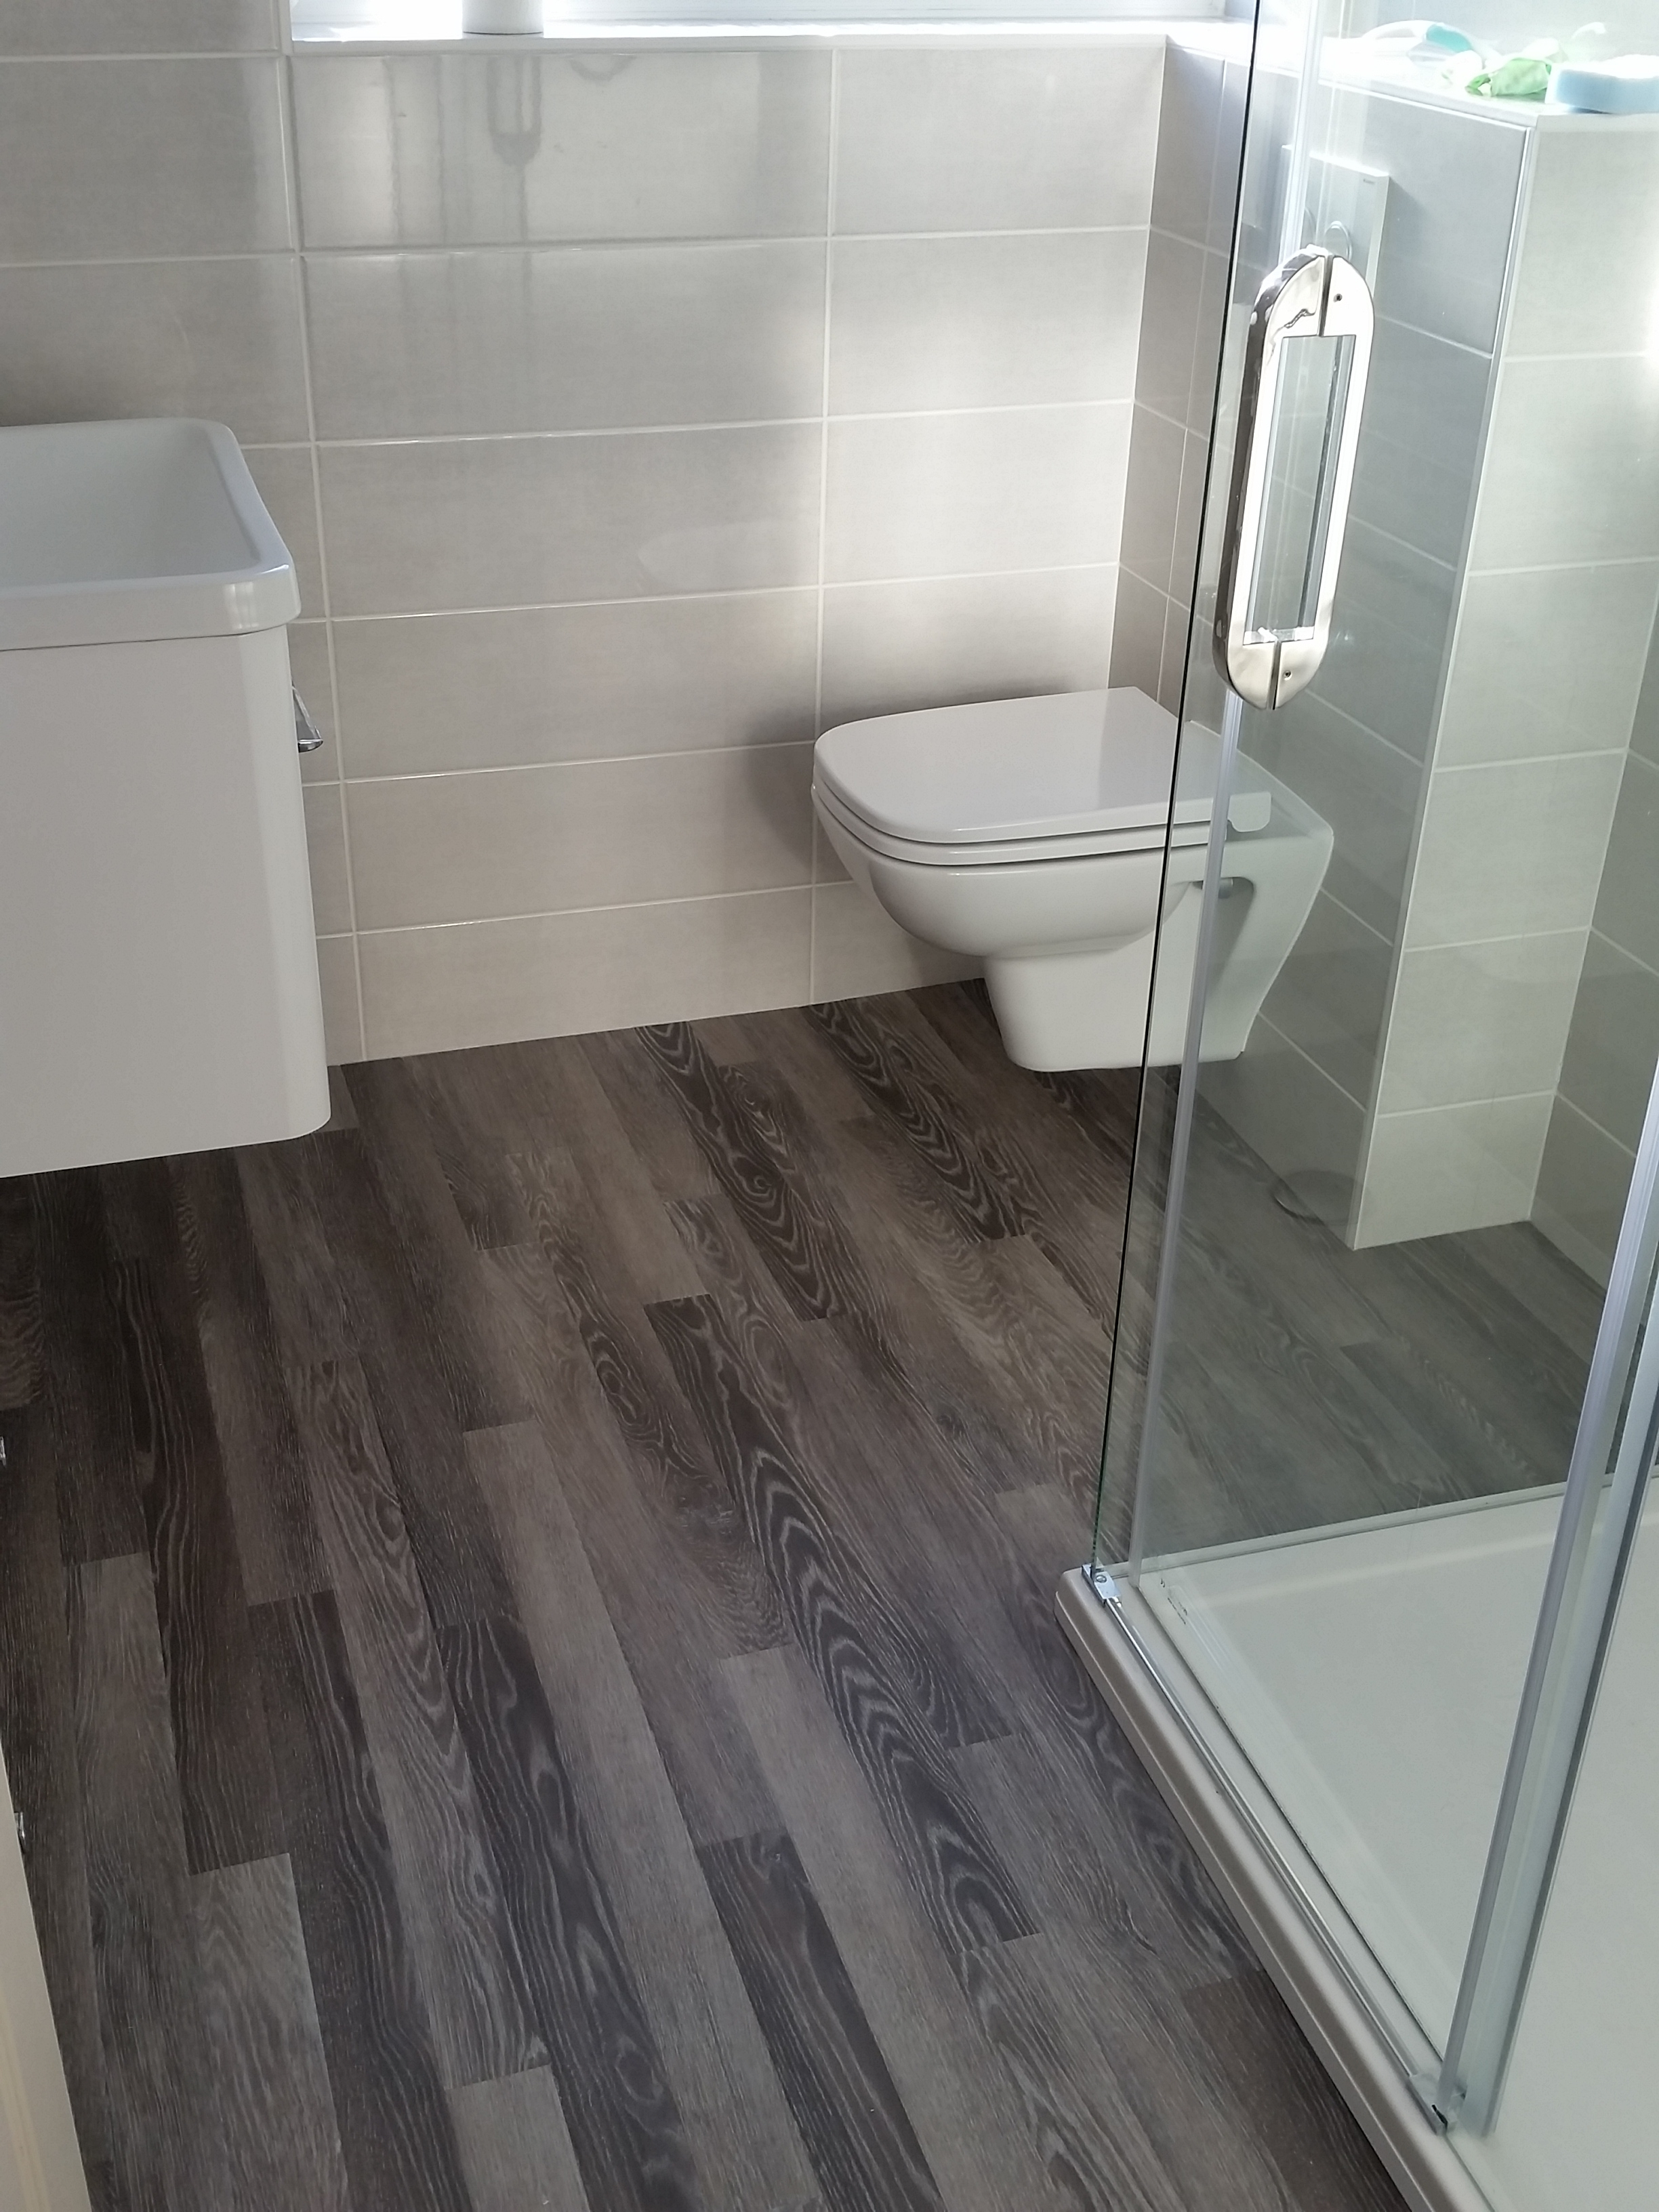 Wood Effect Vinyl Bathroom Flooring